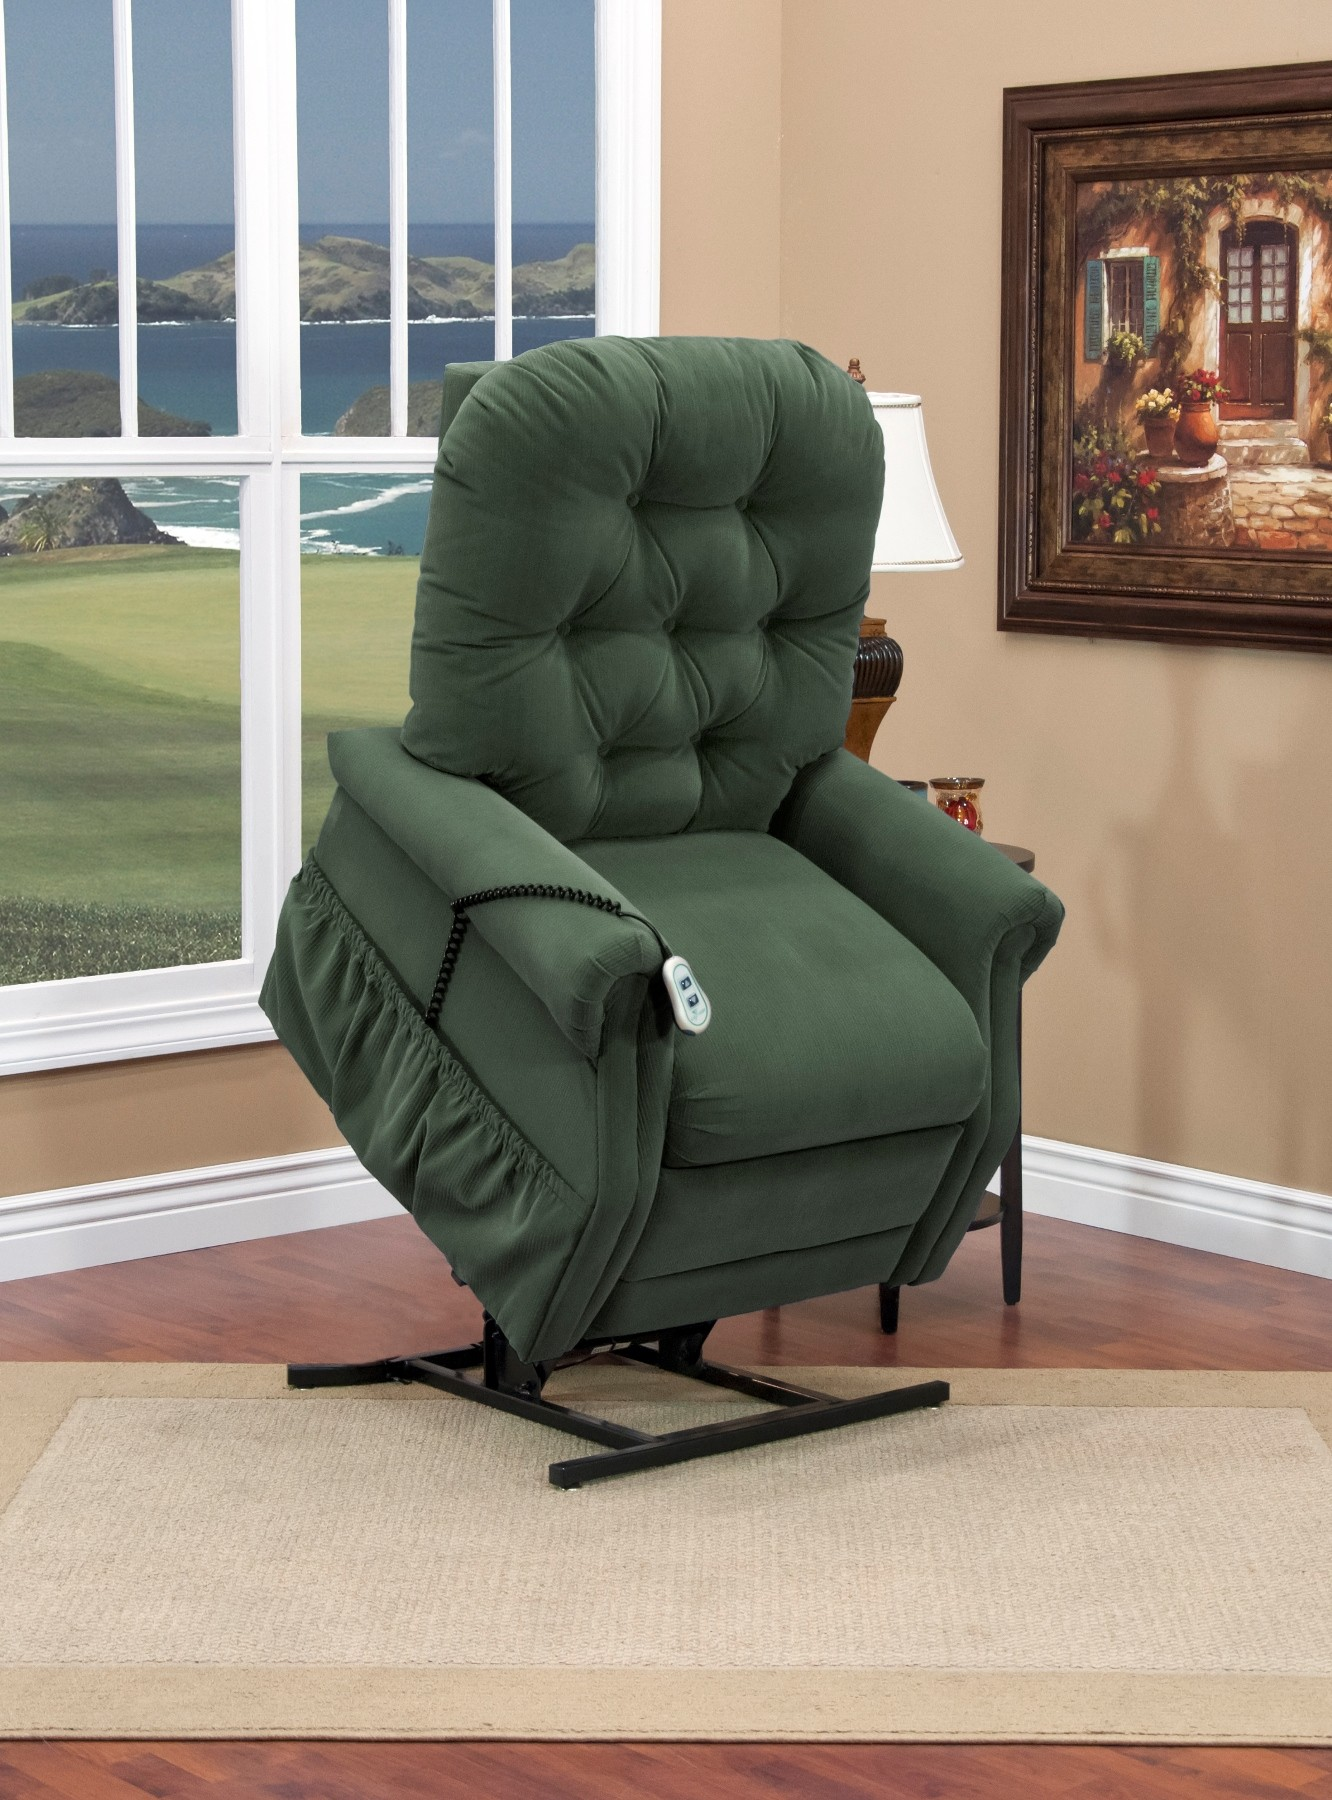 Med Lift Chairs 25 Series Two Way Reclining Aaron Lift Chair From Med Lift